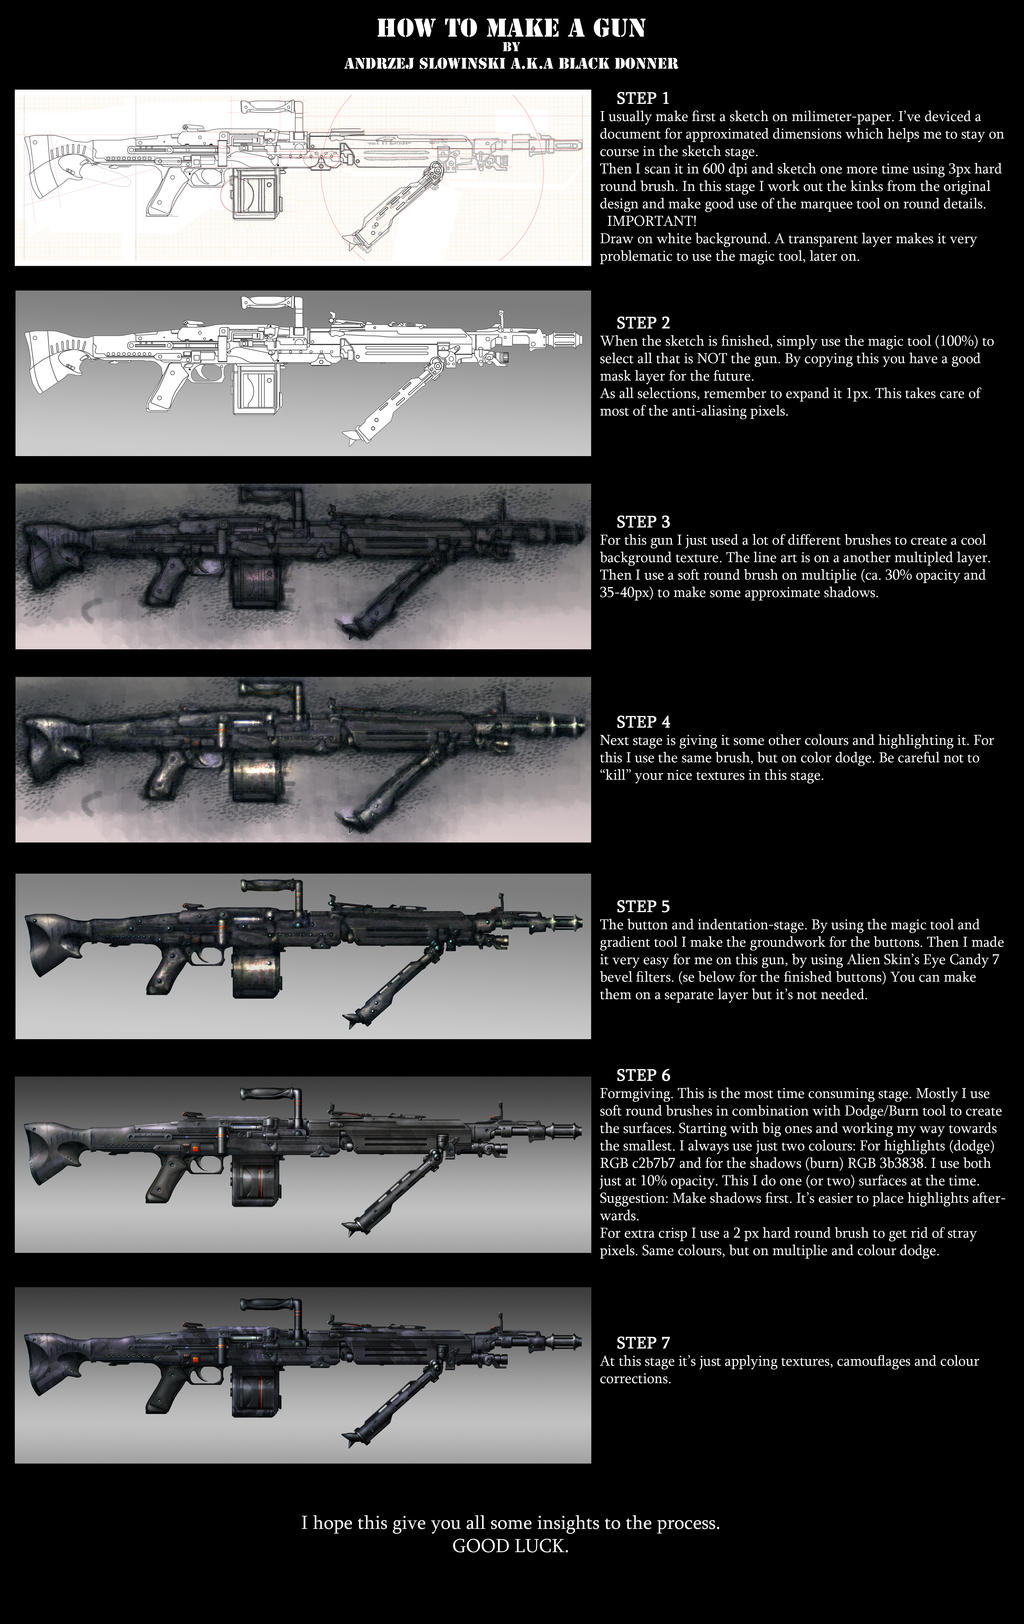 How to make a gun - Step by step by BlackDonner